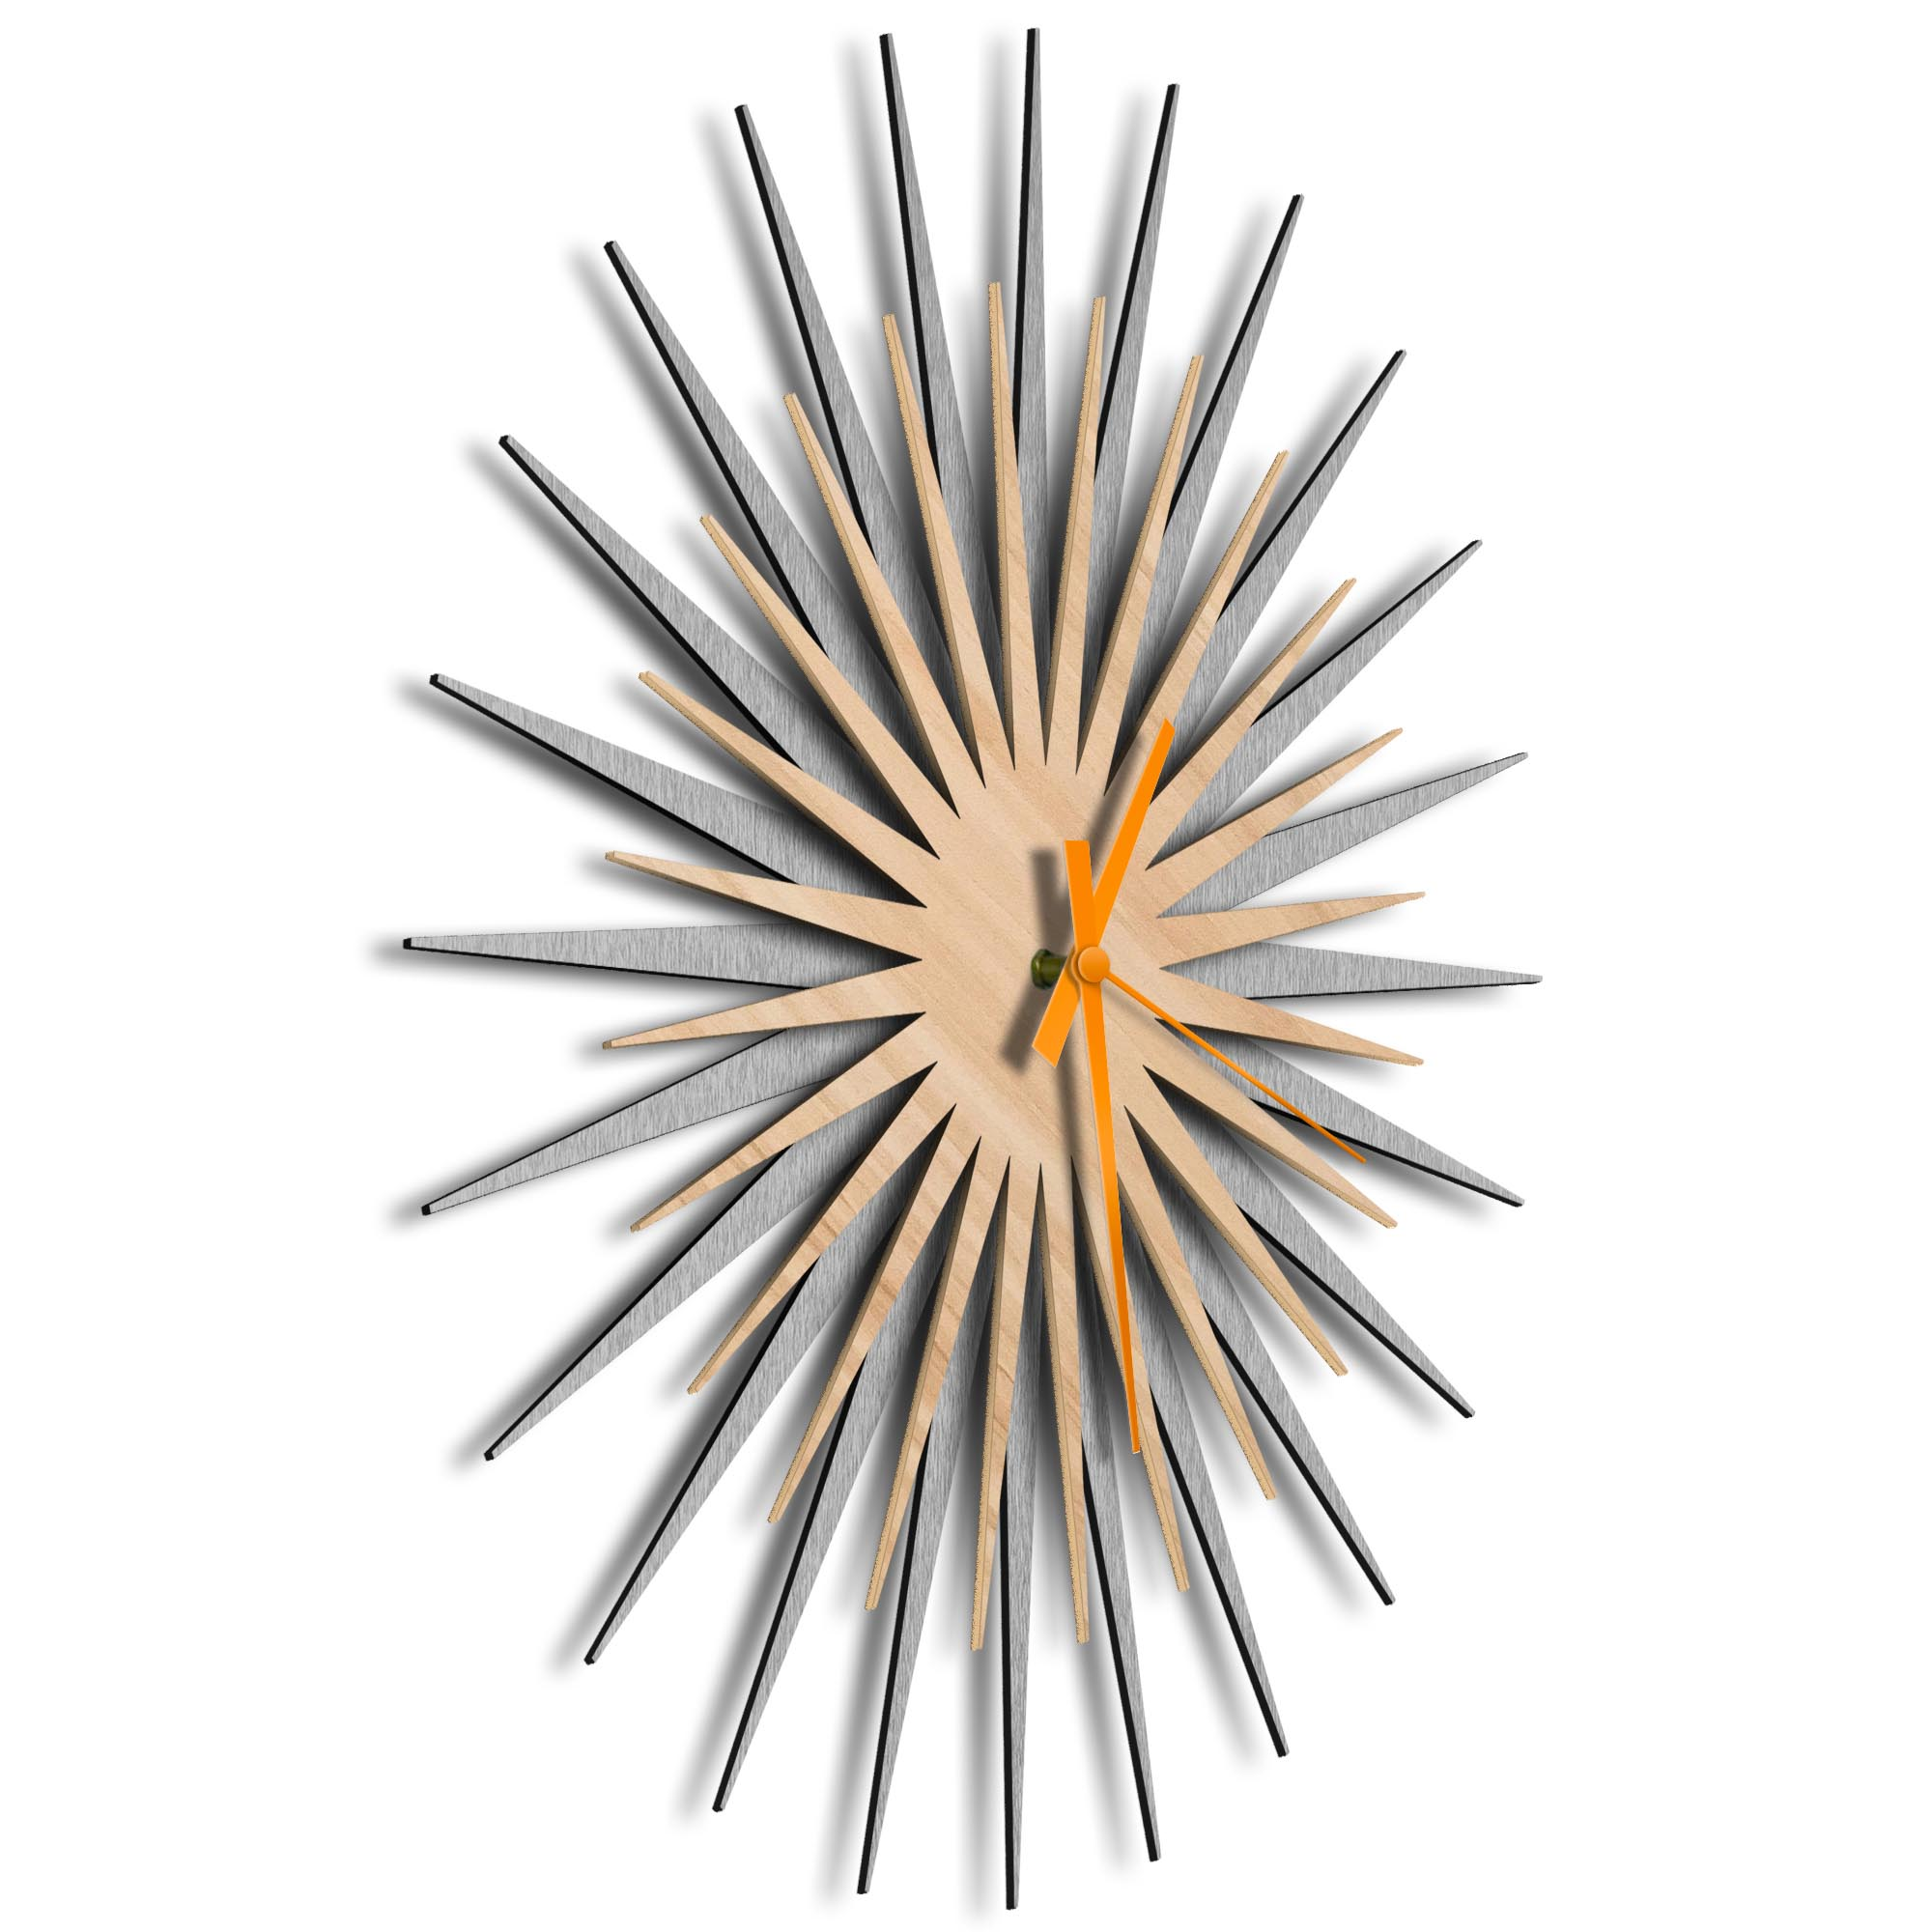 Atomic Era Clock Silver Maple Orange by Adam Schwoeppe - Mid-Century Modern Clock on Brushed Silver Polymetal - Image 2